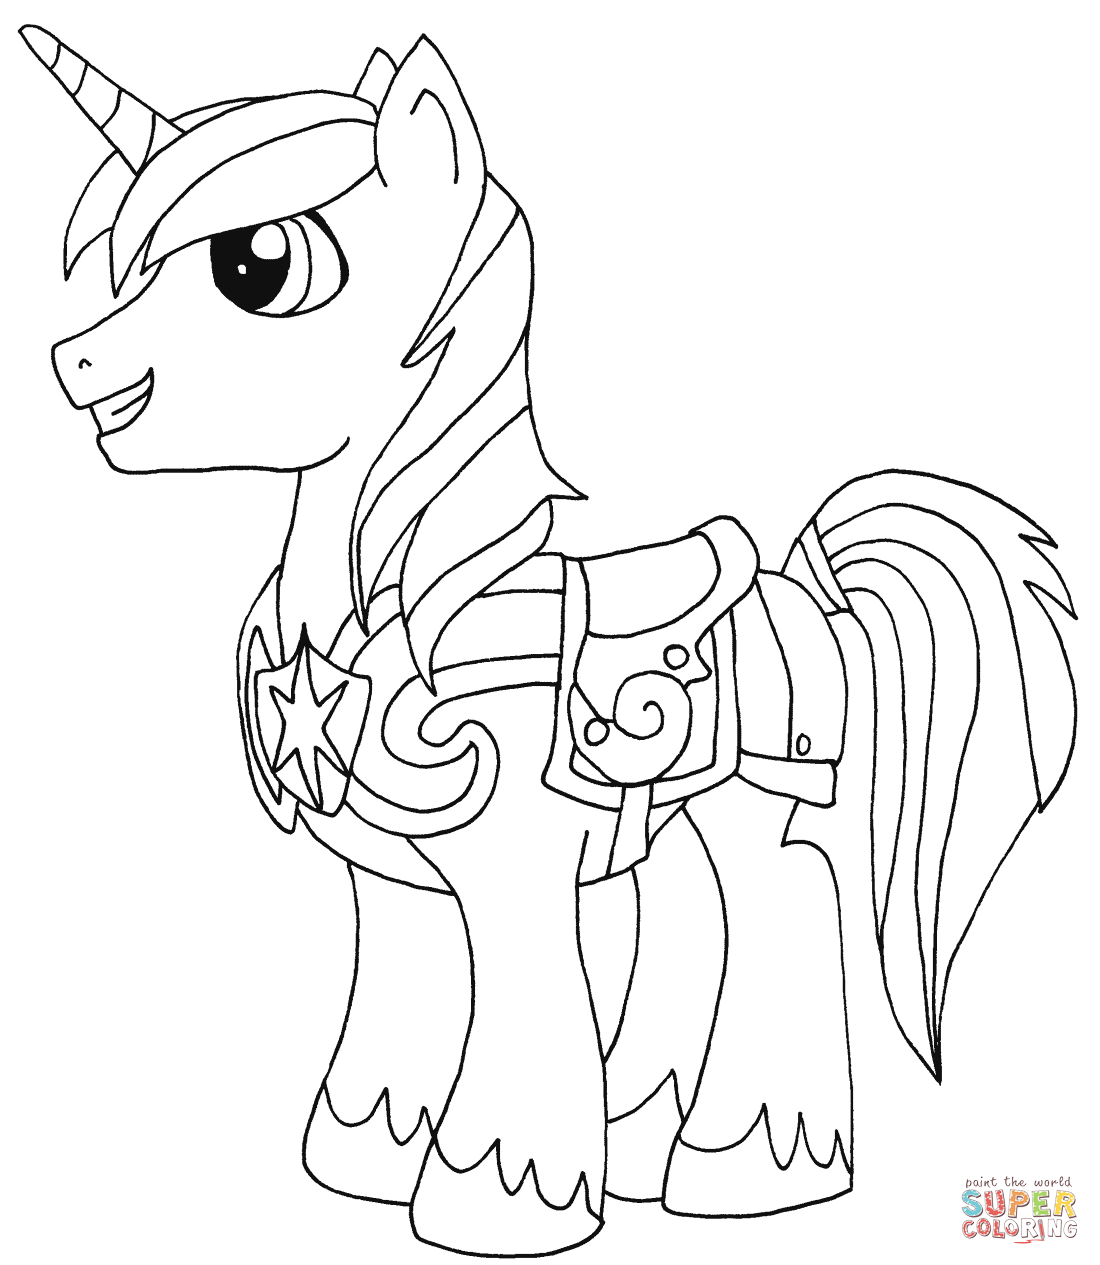 Shining armor coloring page